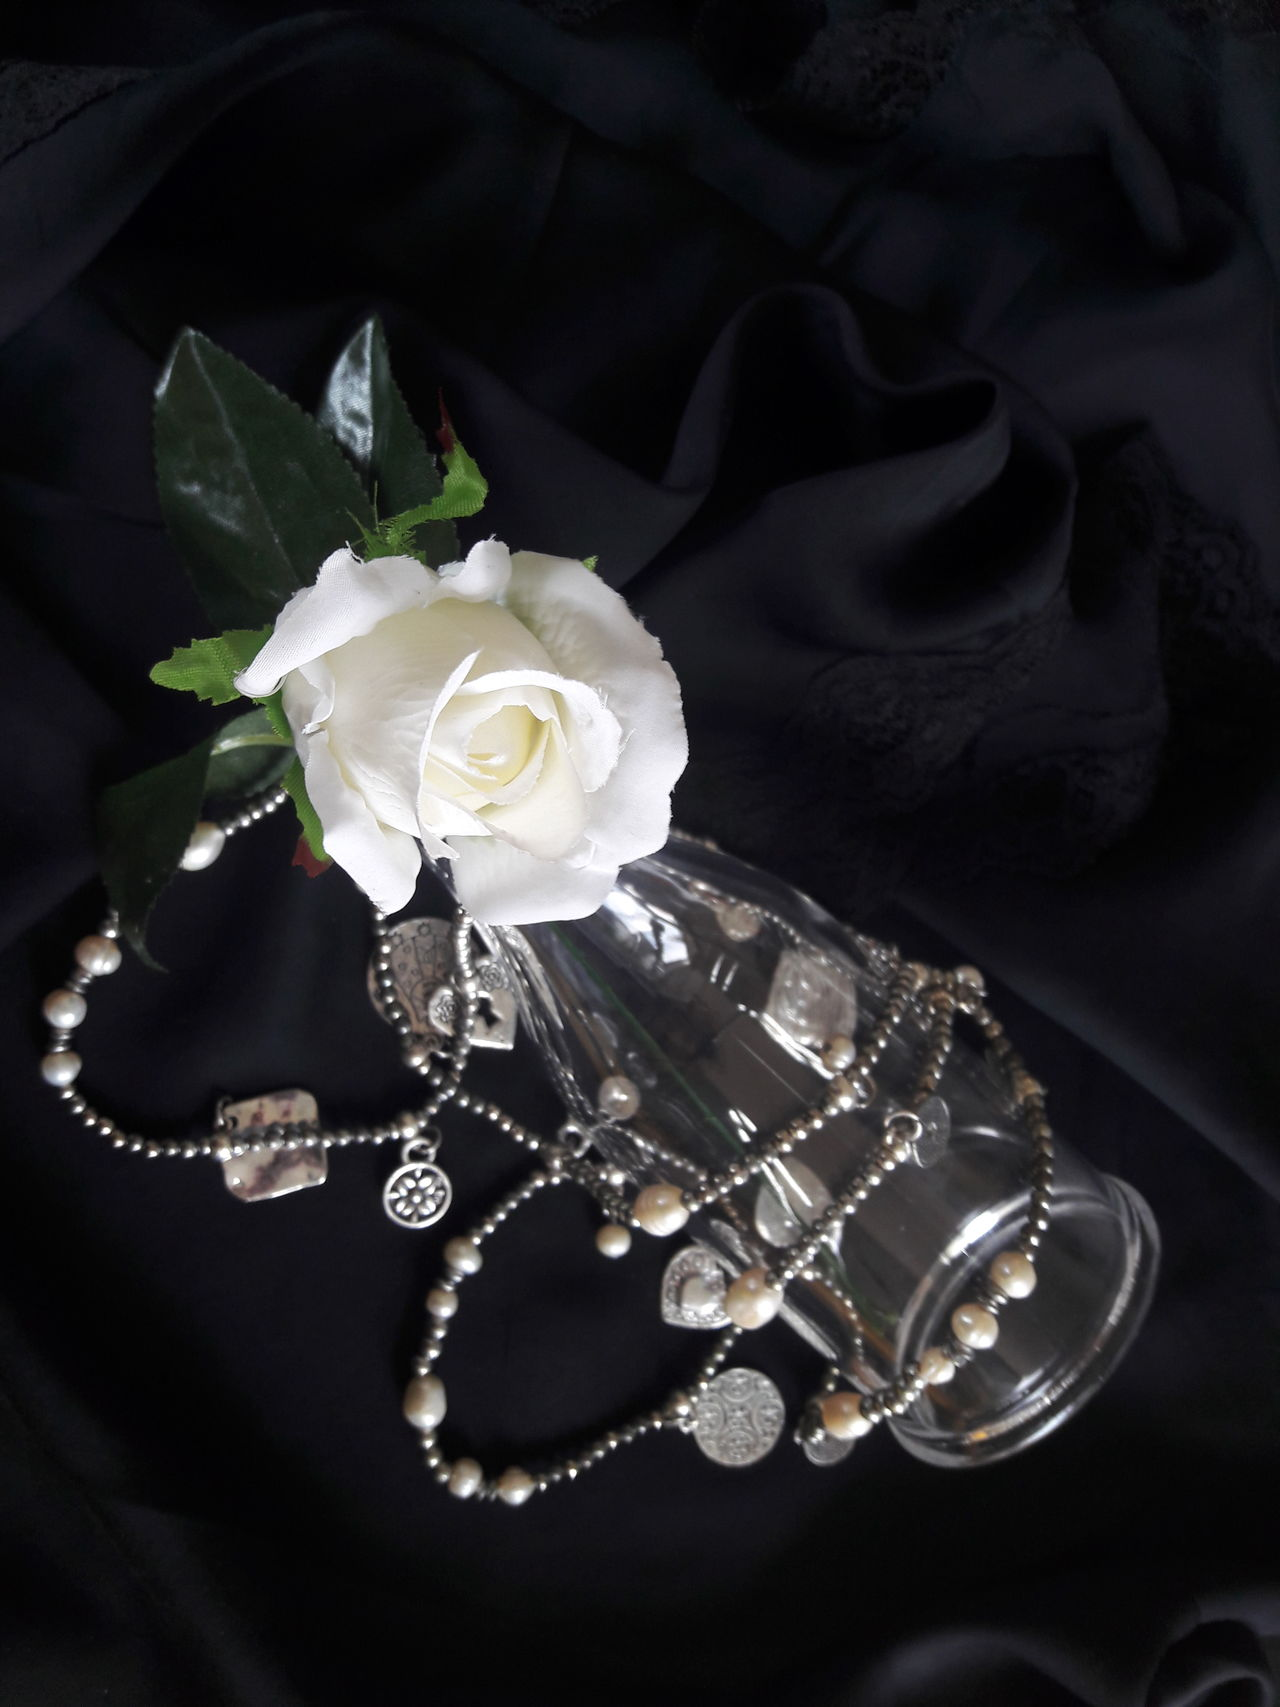 """Purity"" Luxury Jewelry Fragility Flower Rosé White Rose Purity Pureness Chastity Concept Conceptual Close Up White Black Silver  Black And White Pearls White Pearls Silk Lace Black Silk Social Black Background No People Femininity EyeEmNewHere"